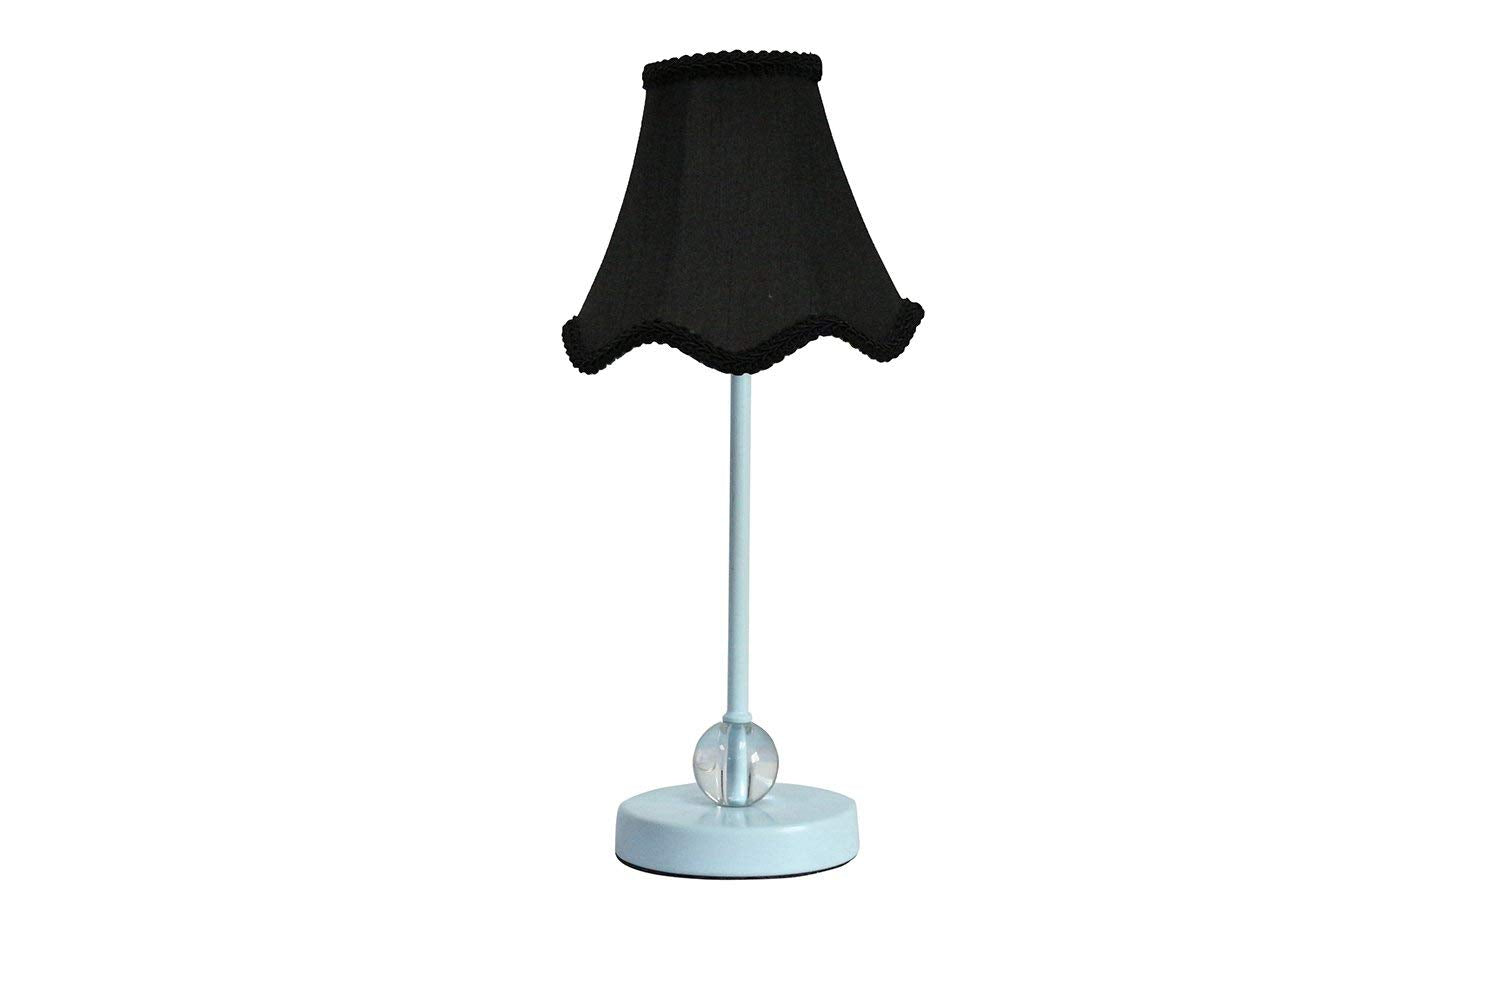 Chelsea Mini Accent Lamp with Black Scalloped Lamp Shade